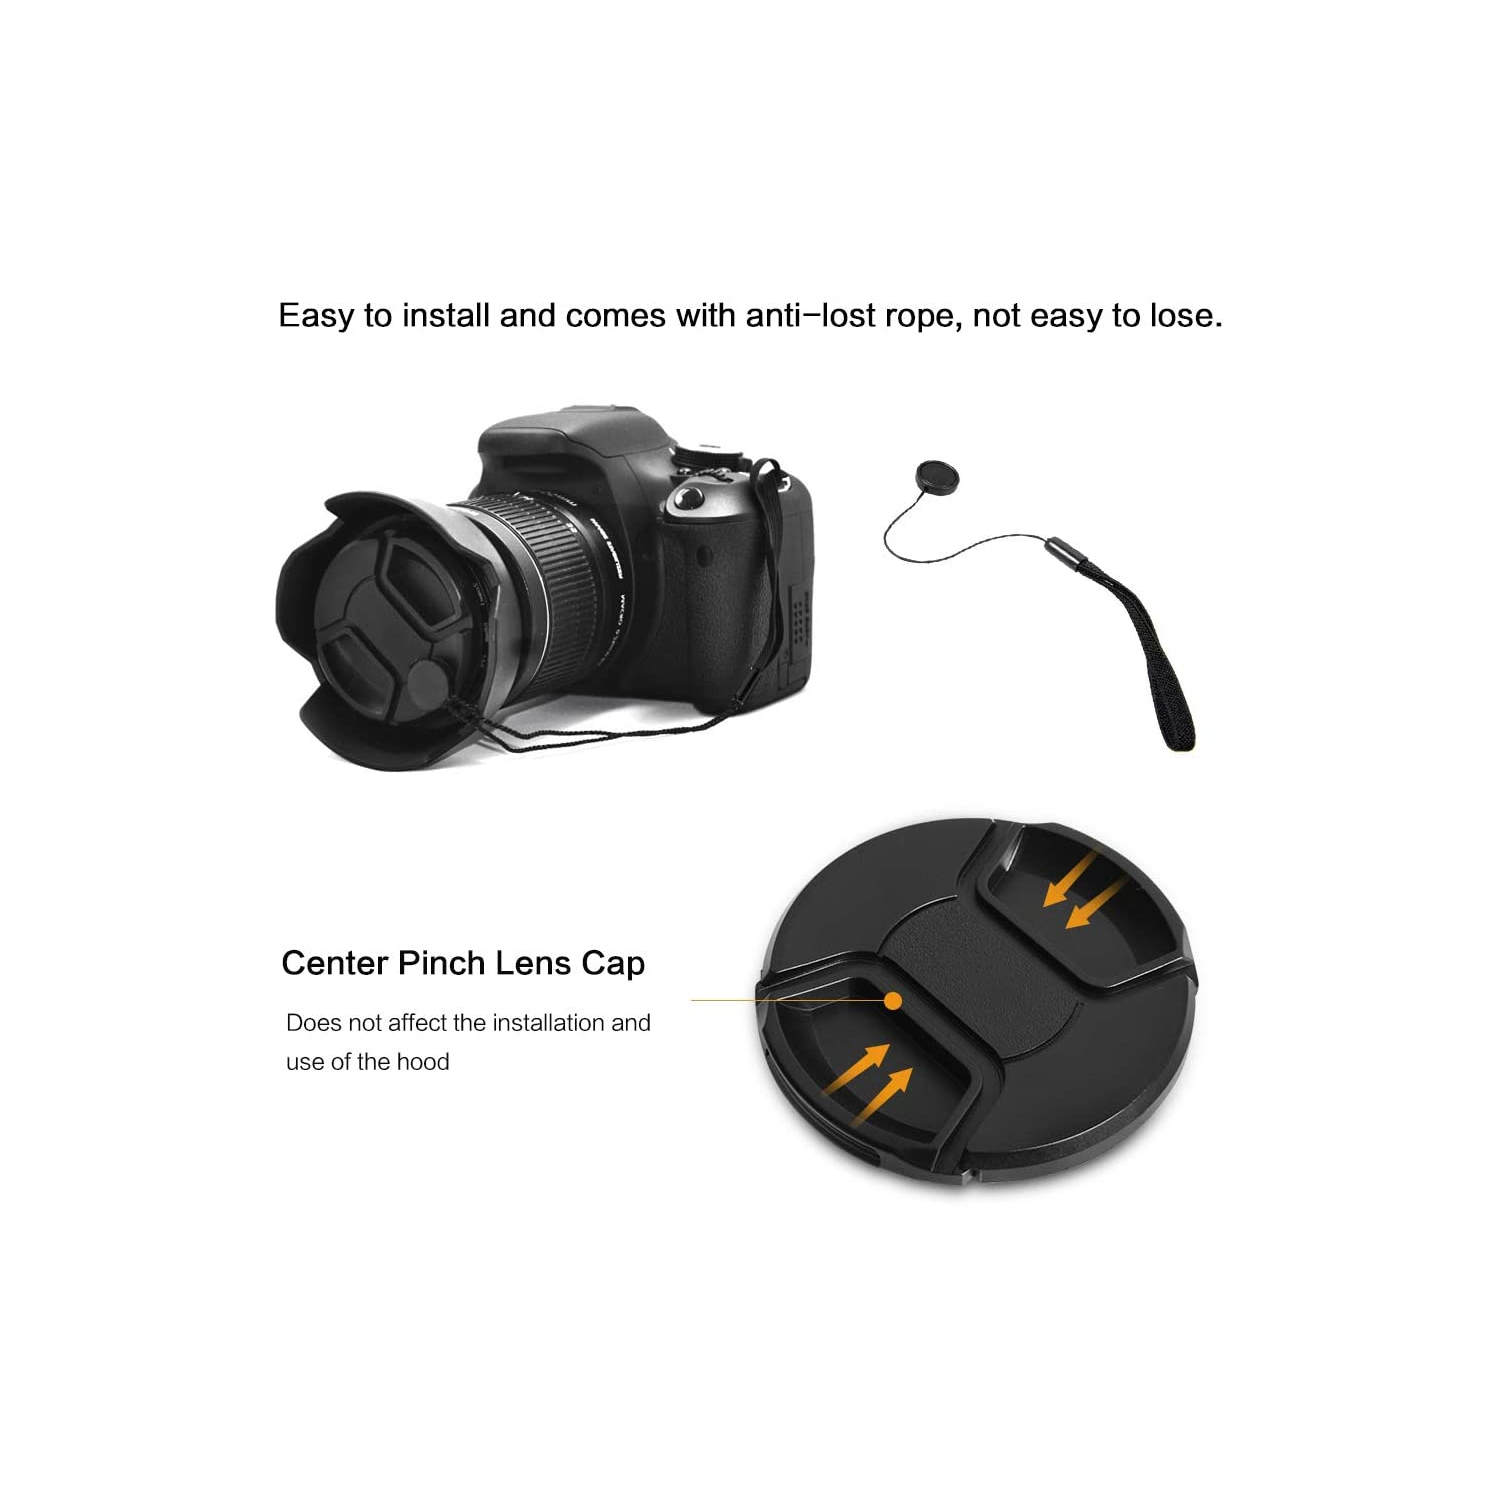 GAOAG 2 Pack 37mm Center Pinch Lens Cap for Olympus Panasonic Canon Nikon and Other Brand of Lenses with 37mm Filter Thread,Replaces Olympus LC-37B Front Lens Cap